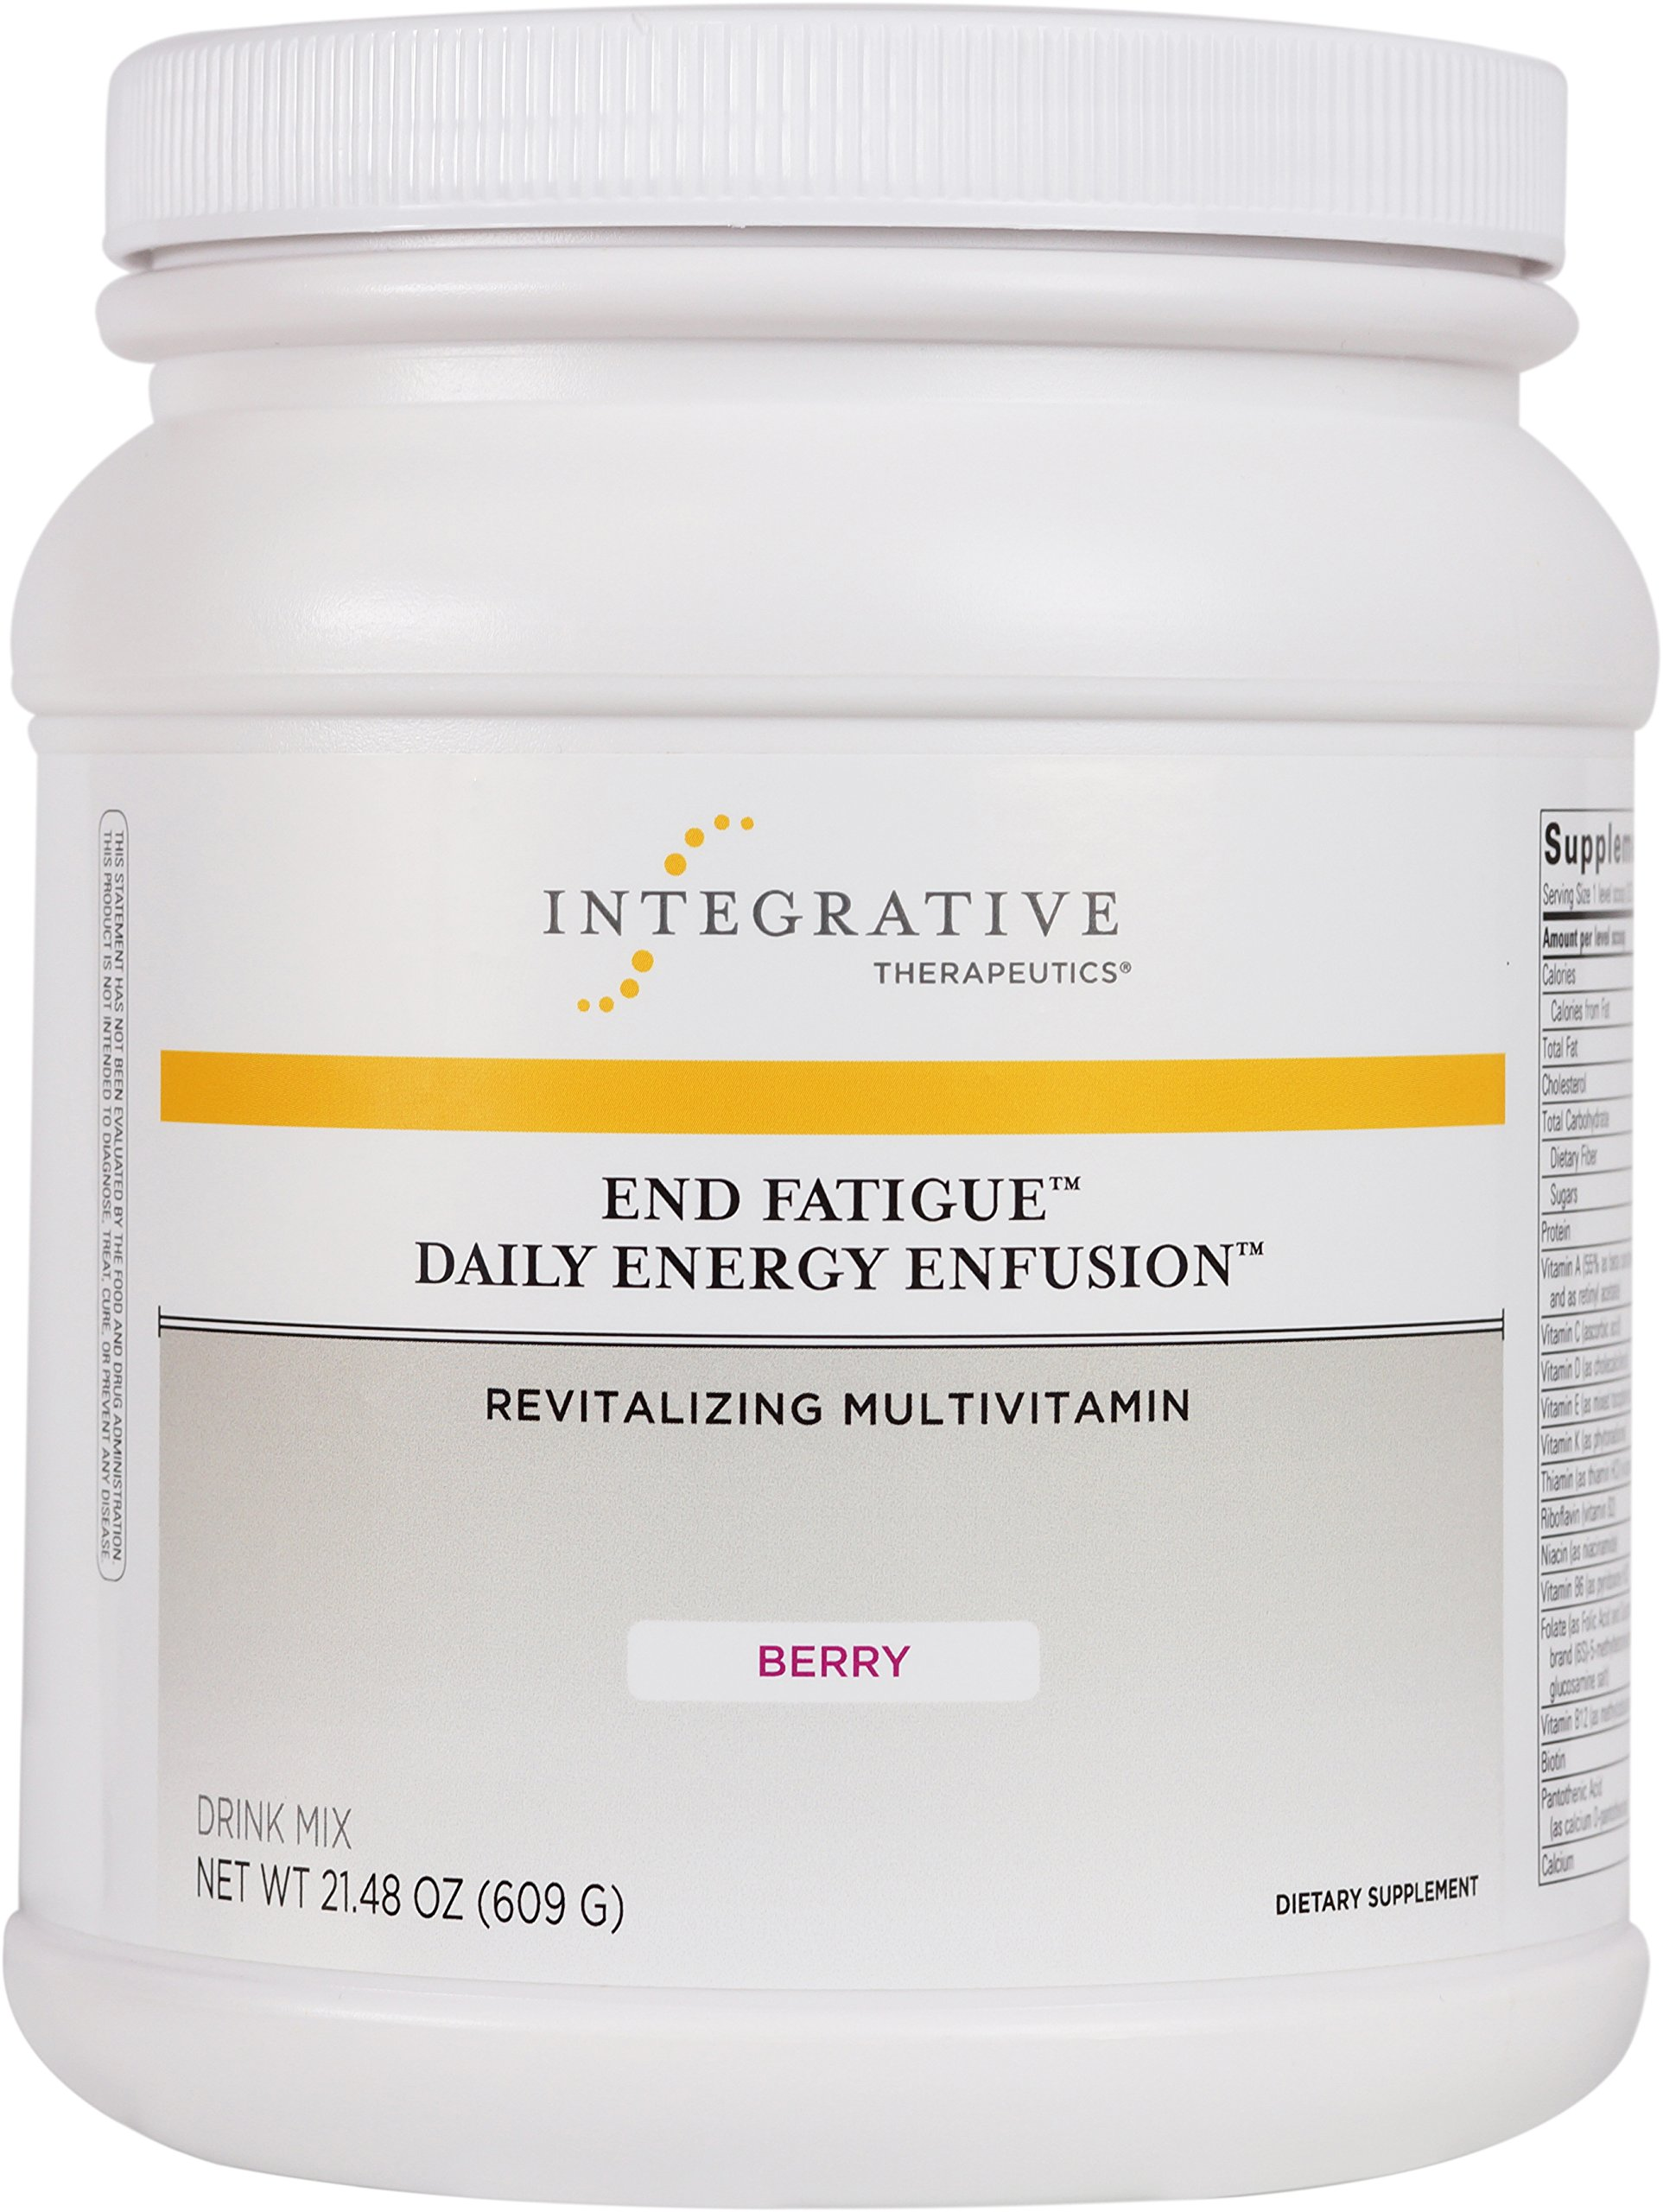 Integrative Therapeutics - End Fatigue Daily Energy Enfusion - Revitalizing Multivitamin - Berry Flavor Drink Mix - 21.48 Ounce